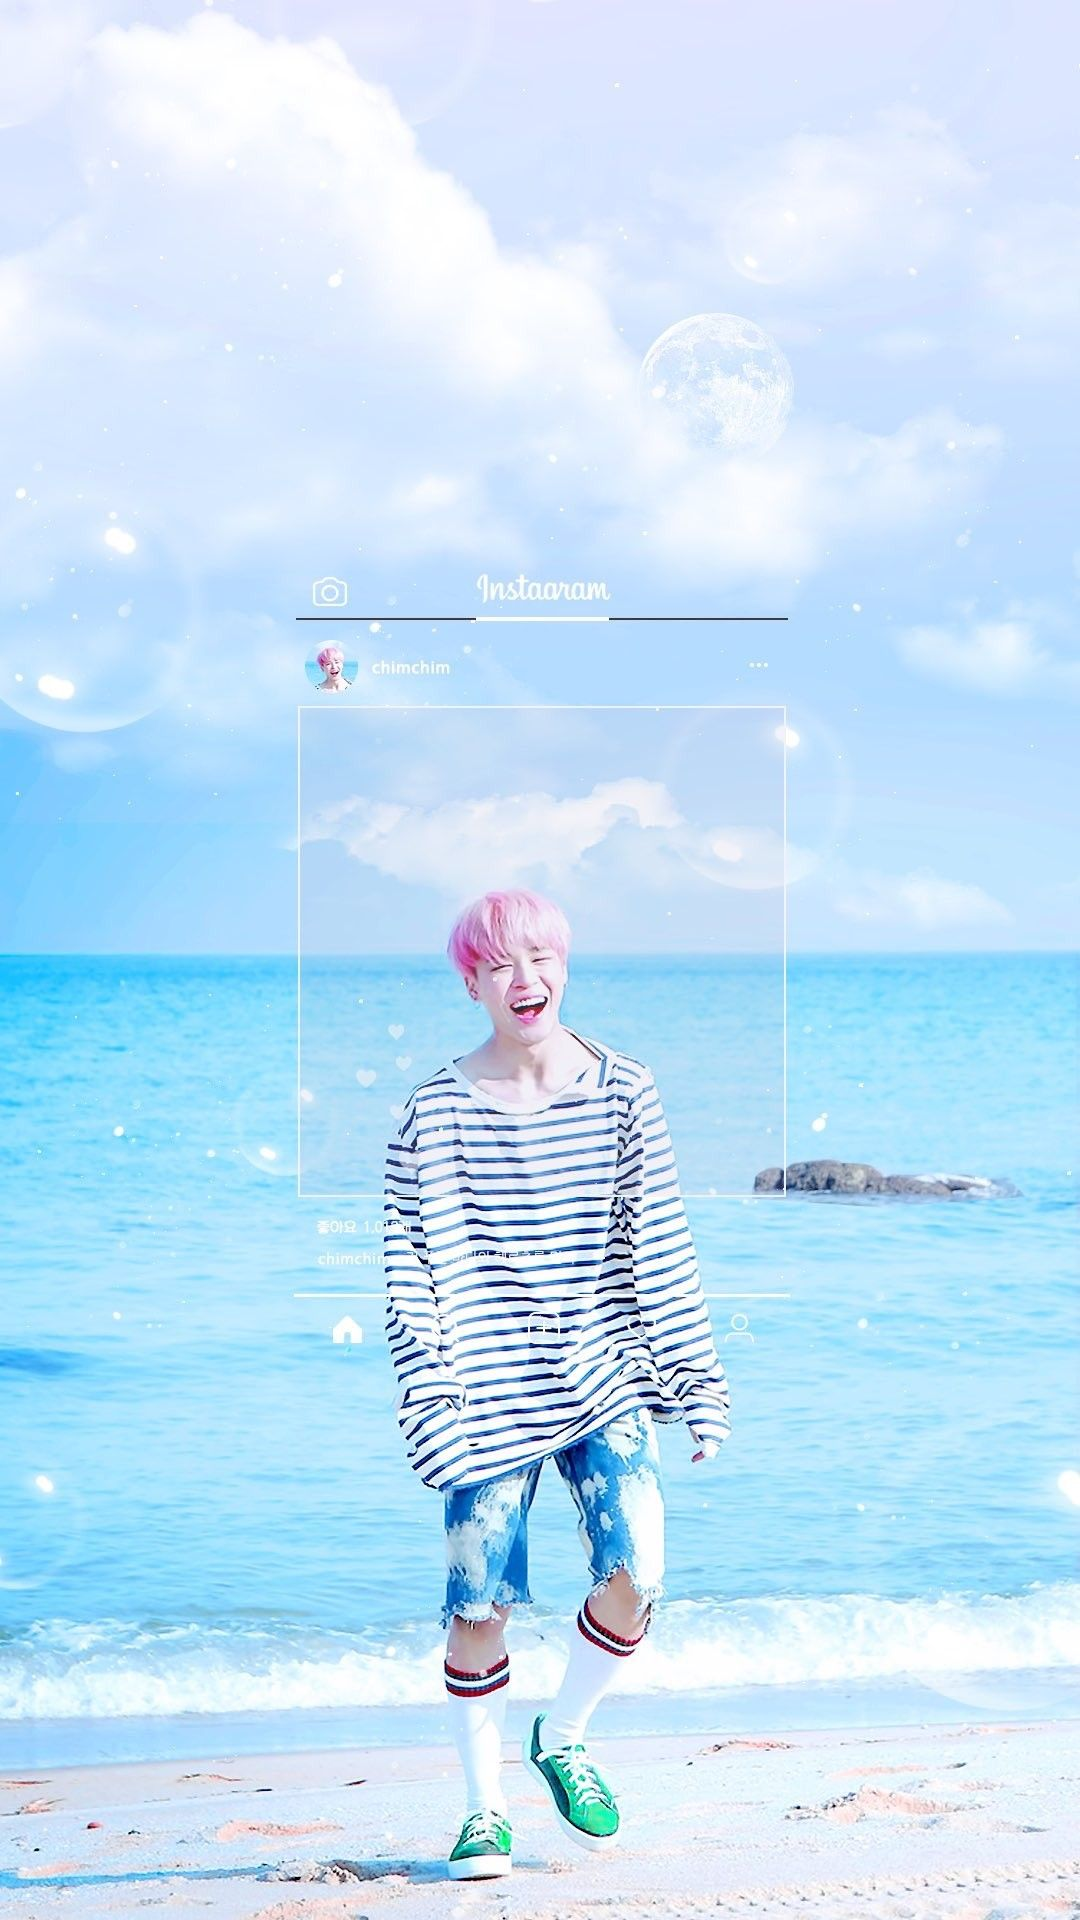 Bts Wallpapers Aesthetic Bts Wallpaper Iphone 1080x1920 Wallpaper Teahub Io